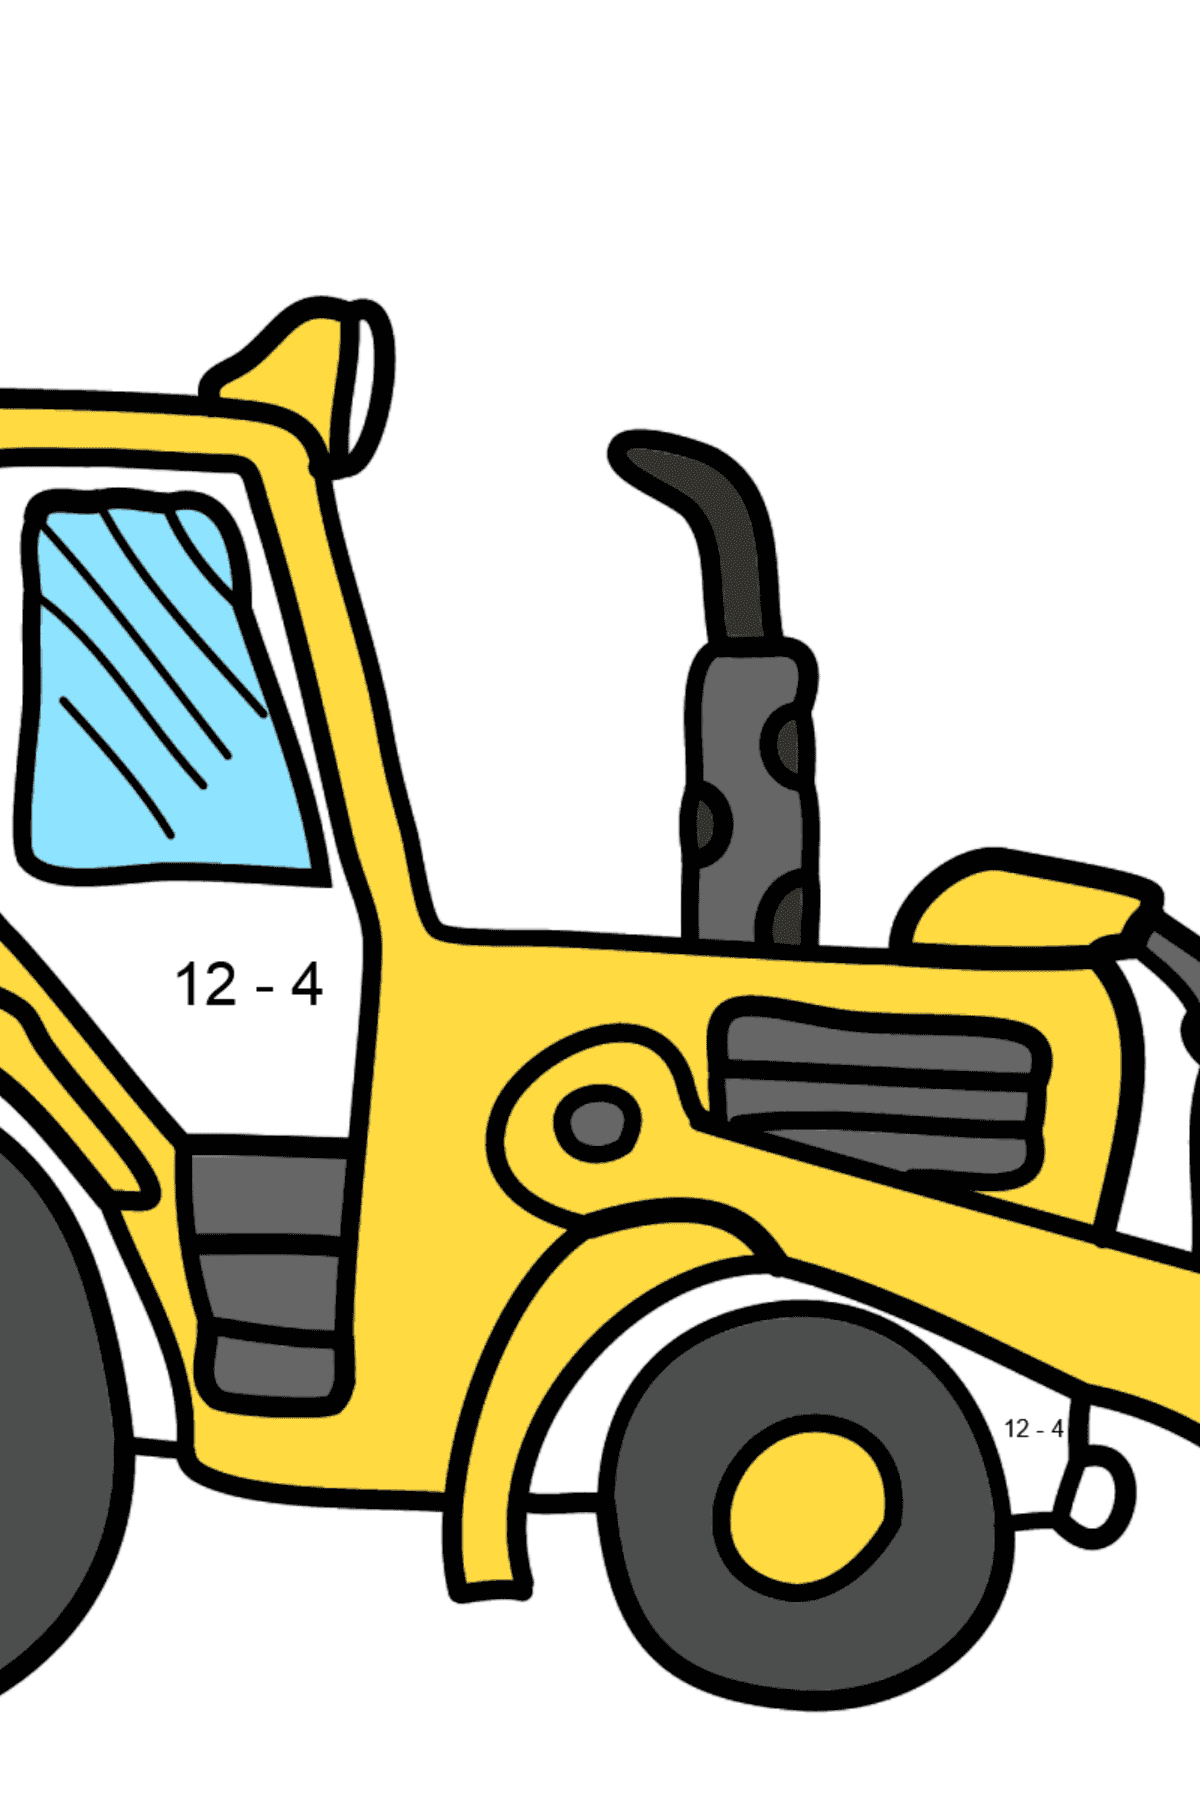 Coloring Page - A Yellow Tractor - Math Coloring - Subtraction for Kids